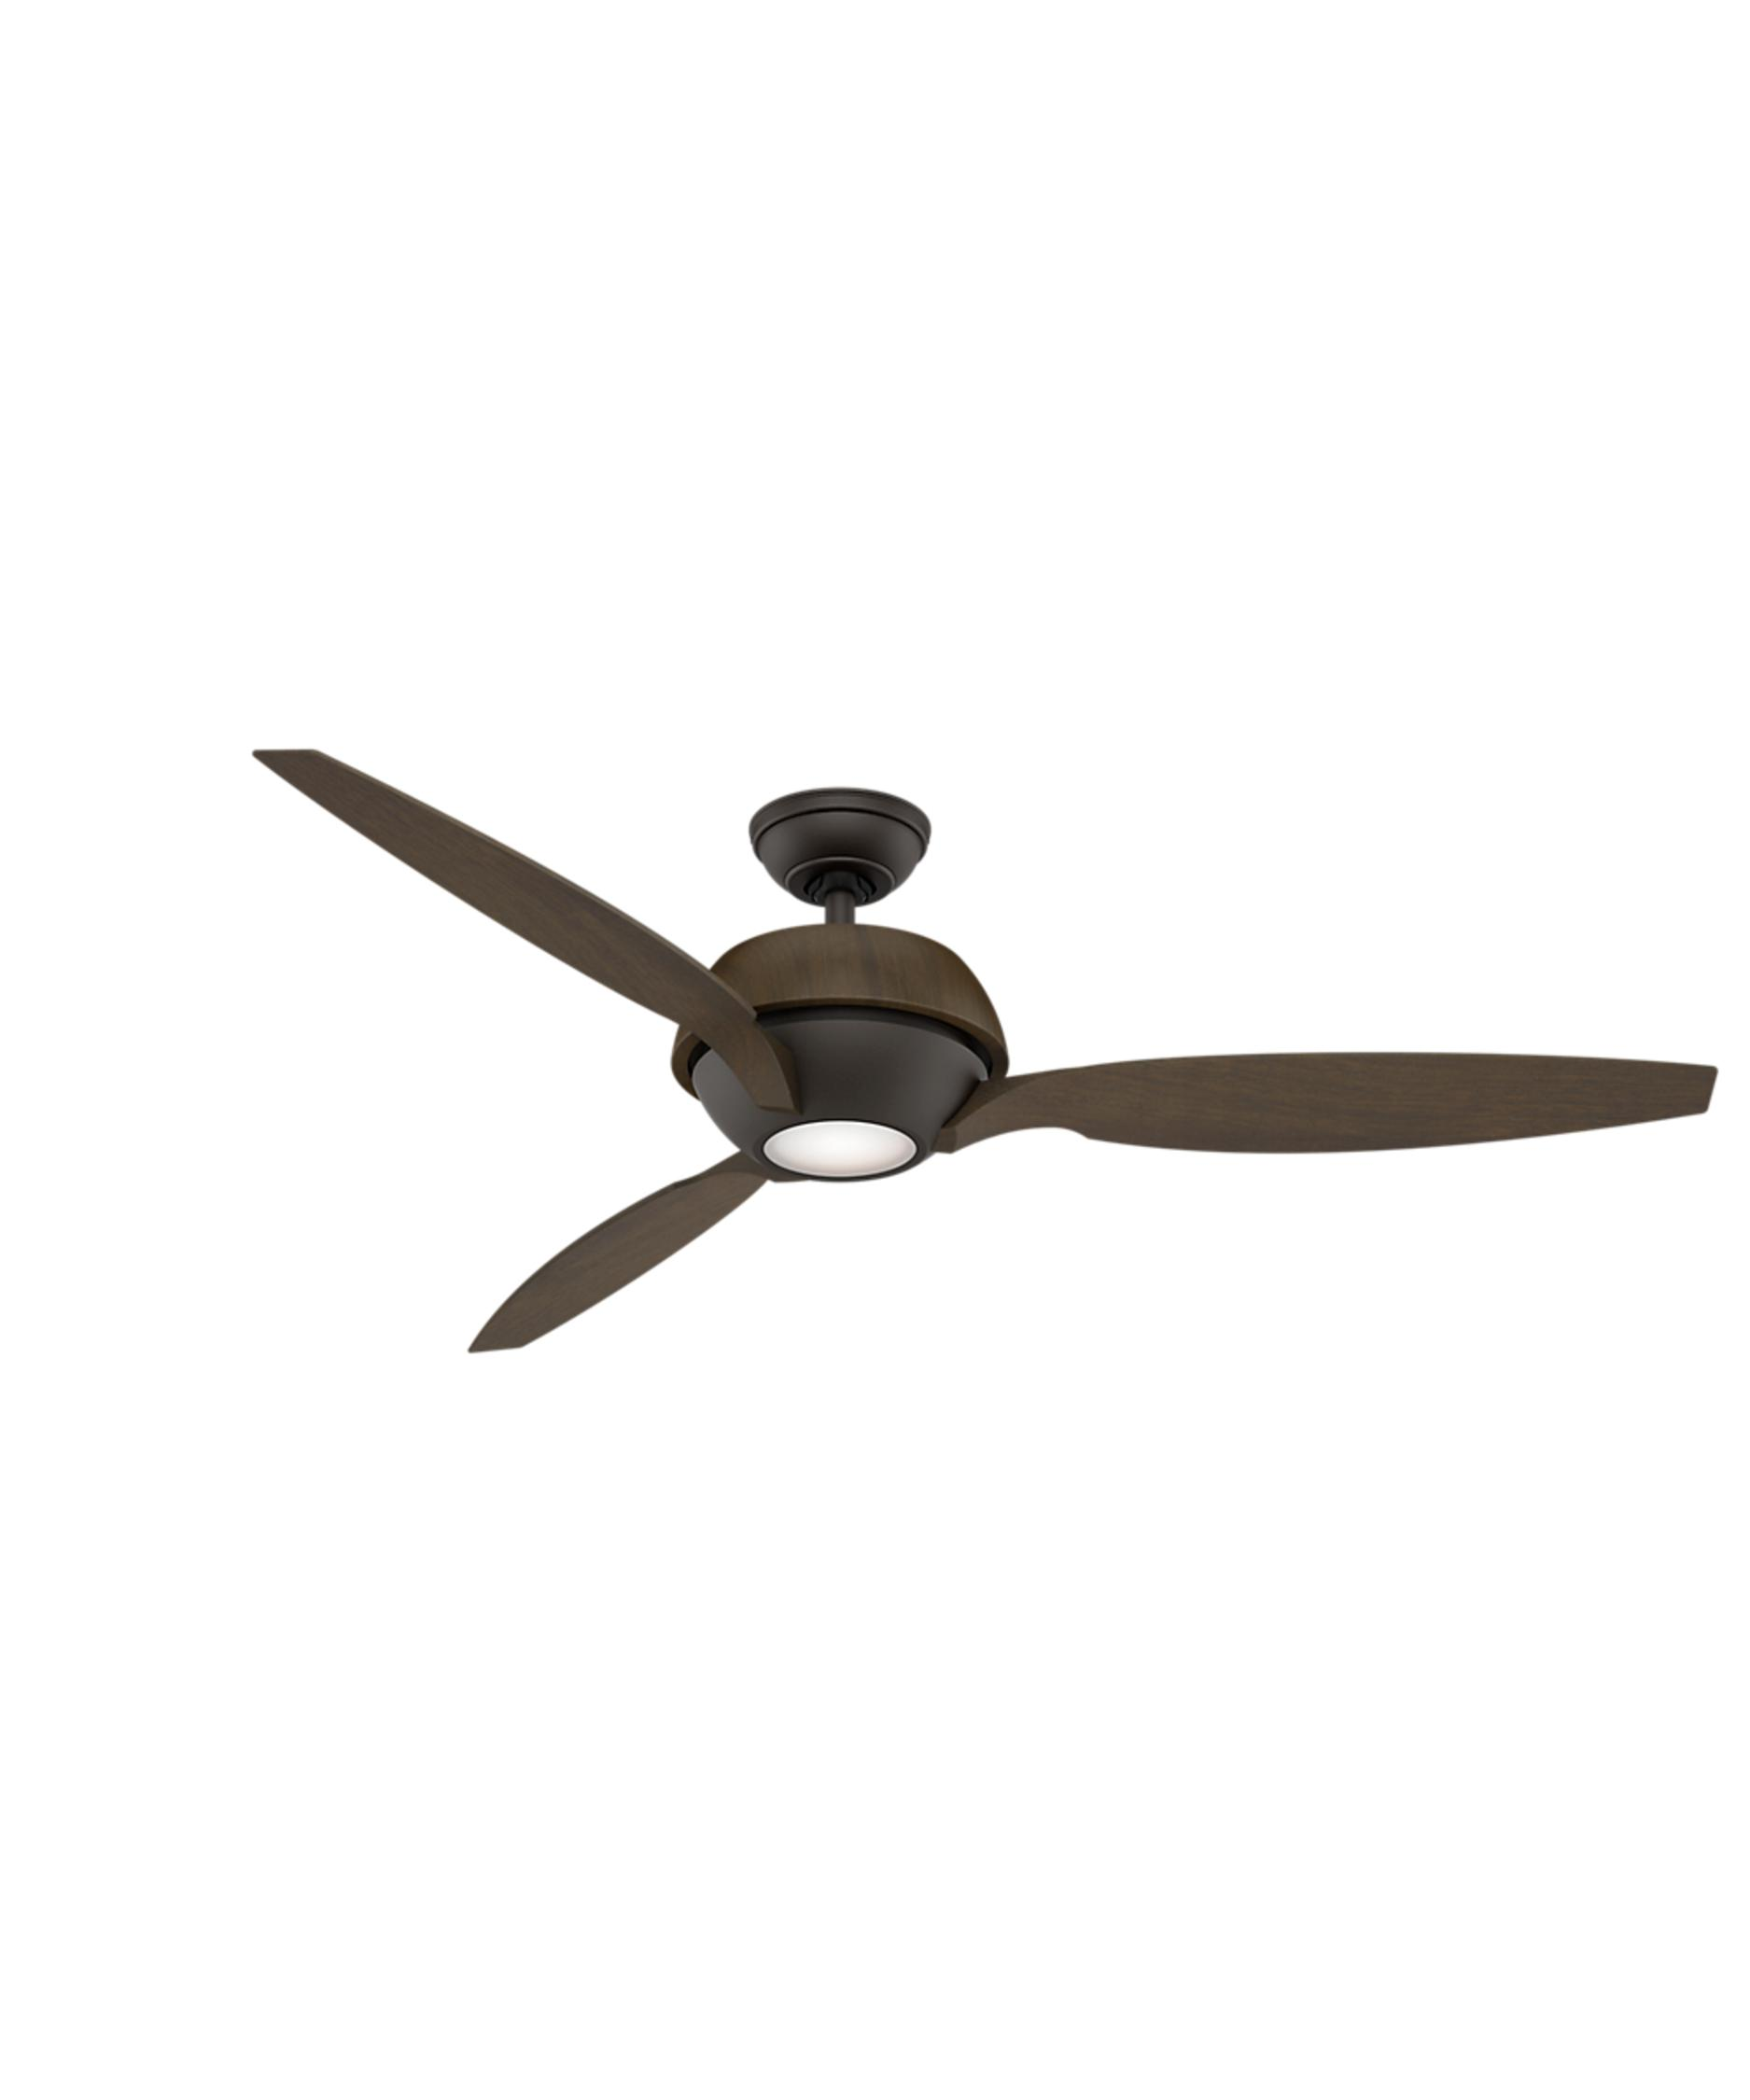 casablanca 59119 riello 60 inch ceiling fan with light kit capitol. Black Bedroom Furniture Sets. Home Design Ideas